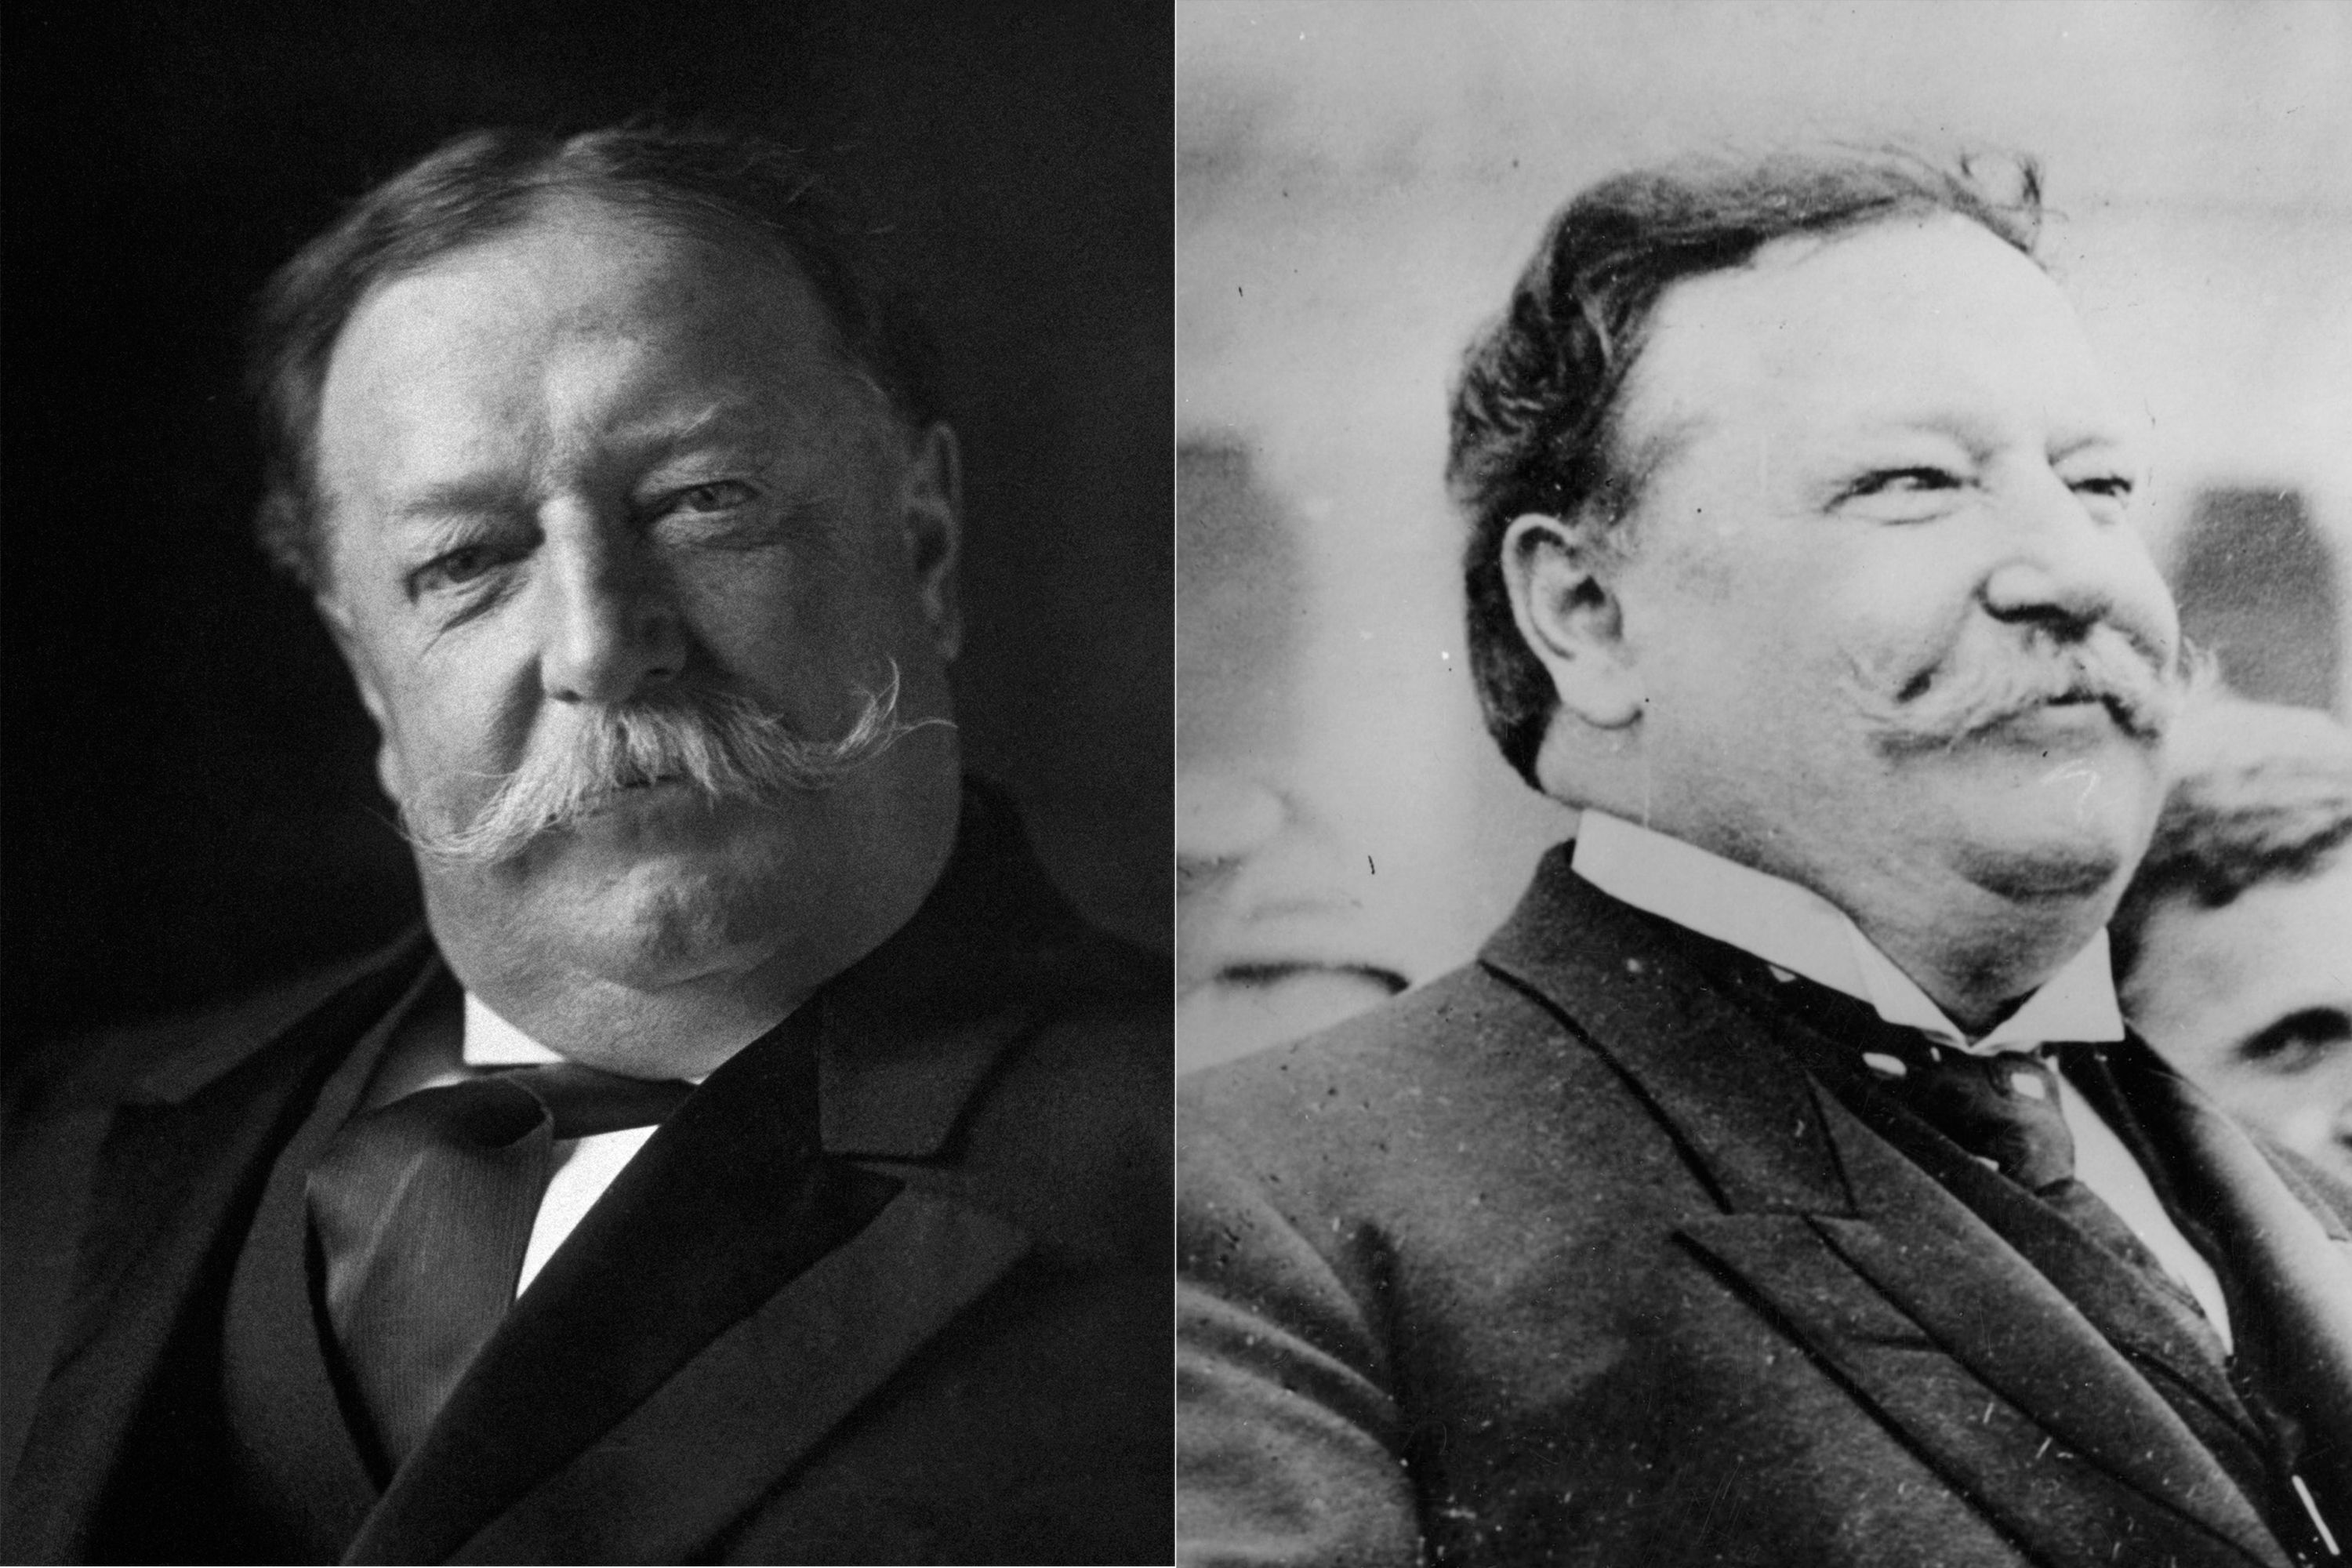 William Howard Taft - Presidents Before And After Serving In Office